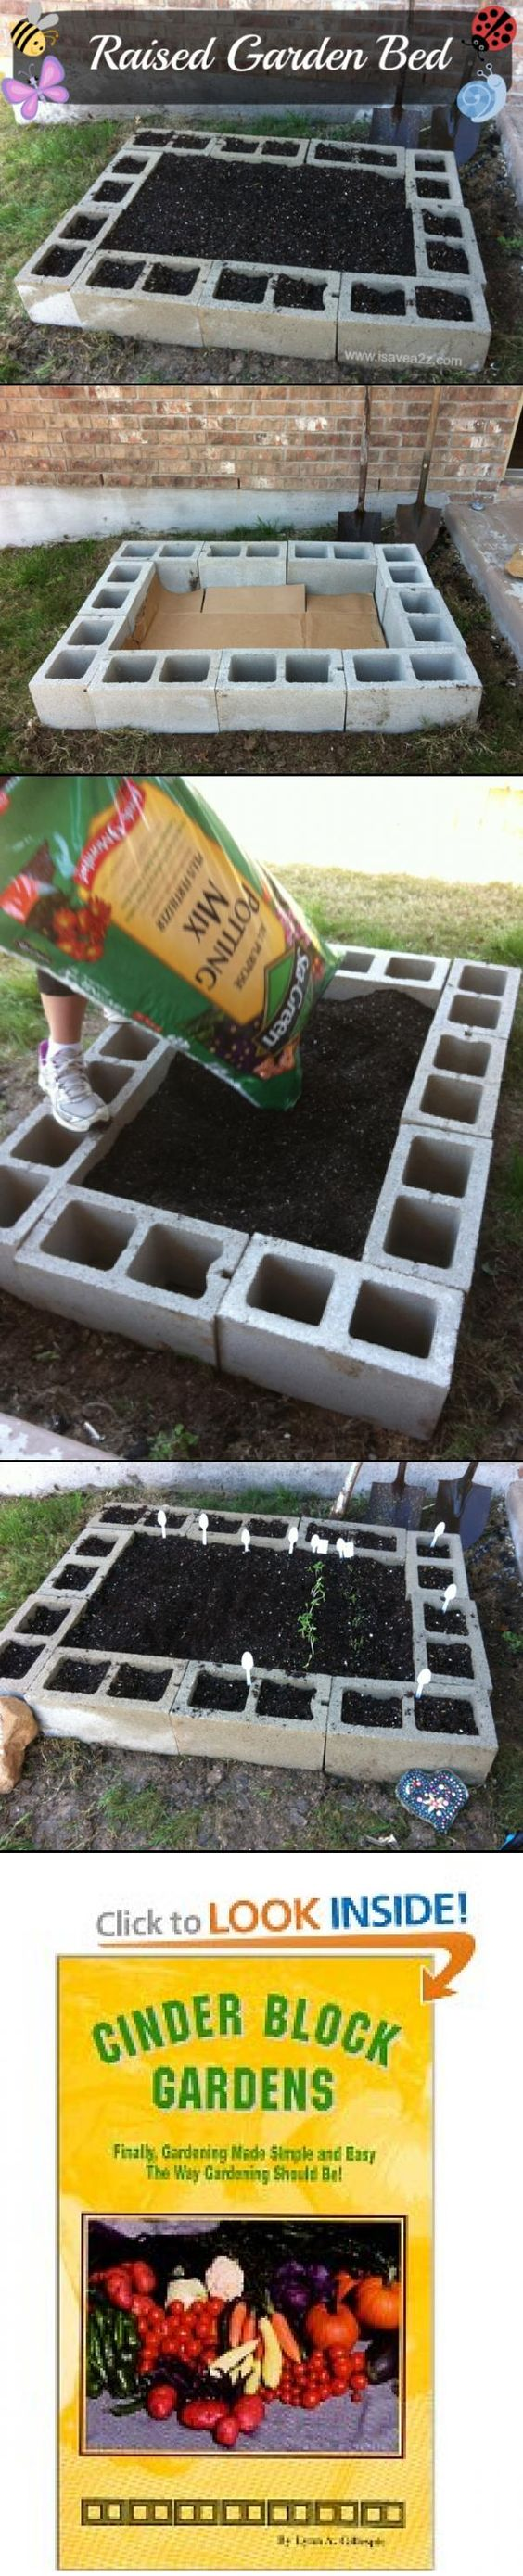 Cinder block square foot gardening